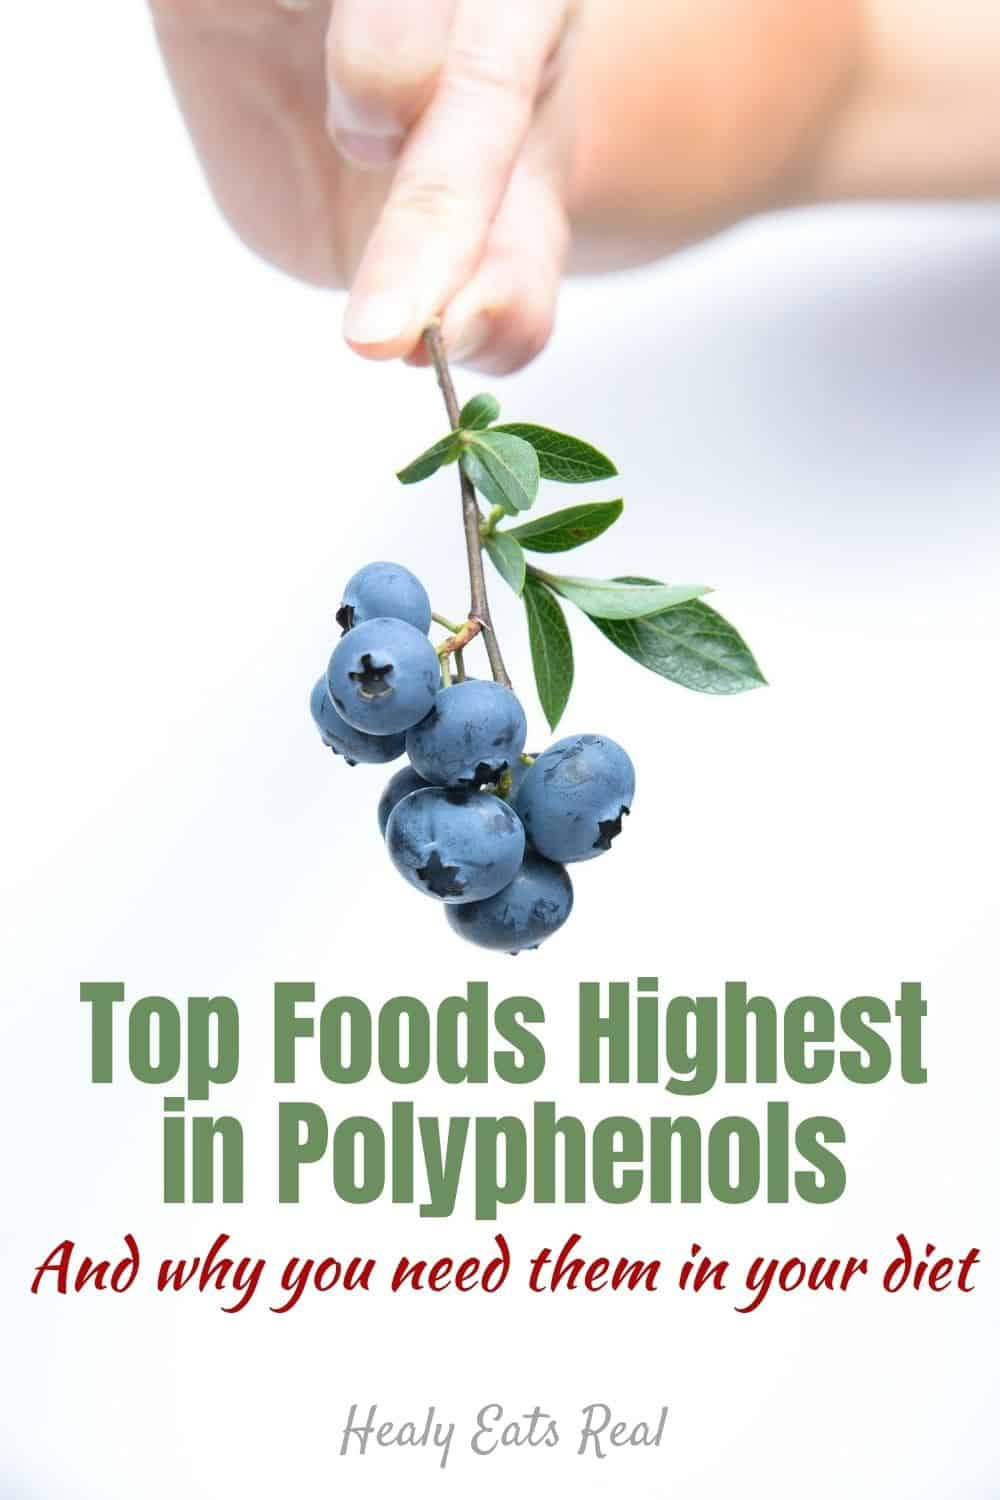 Top Foods Highest in Polyphenols (And why you need them in your diet)